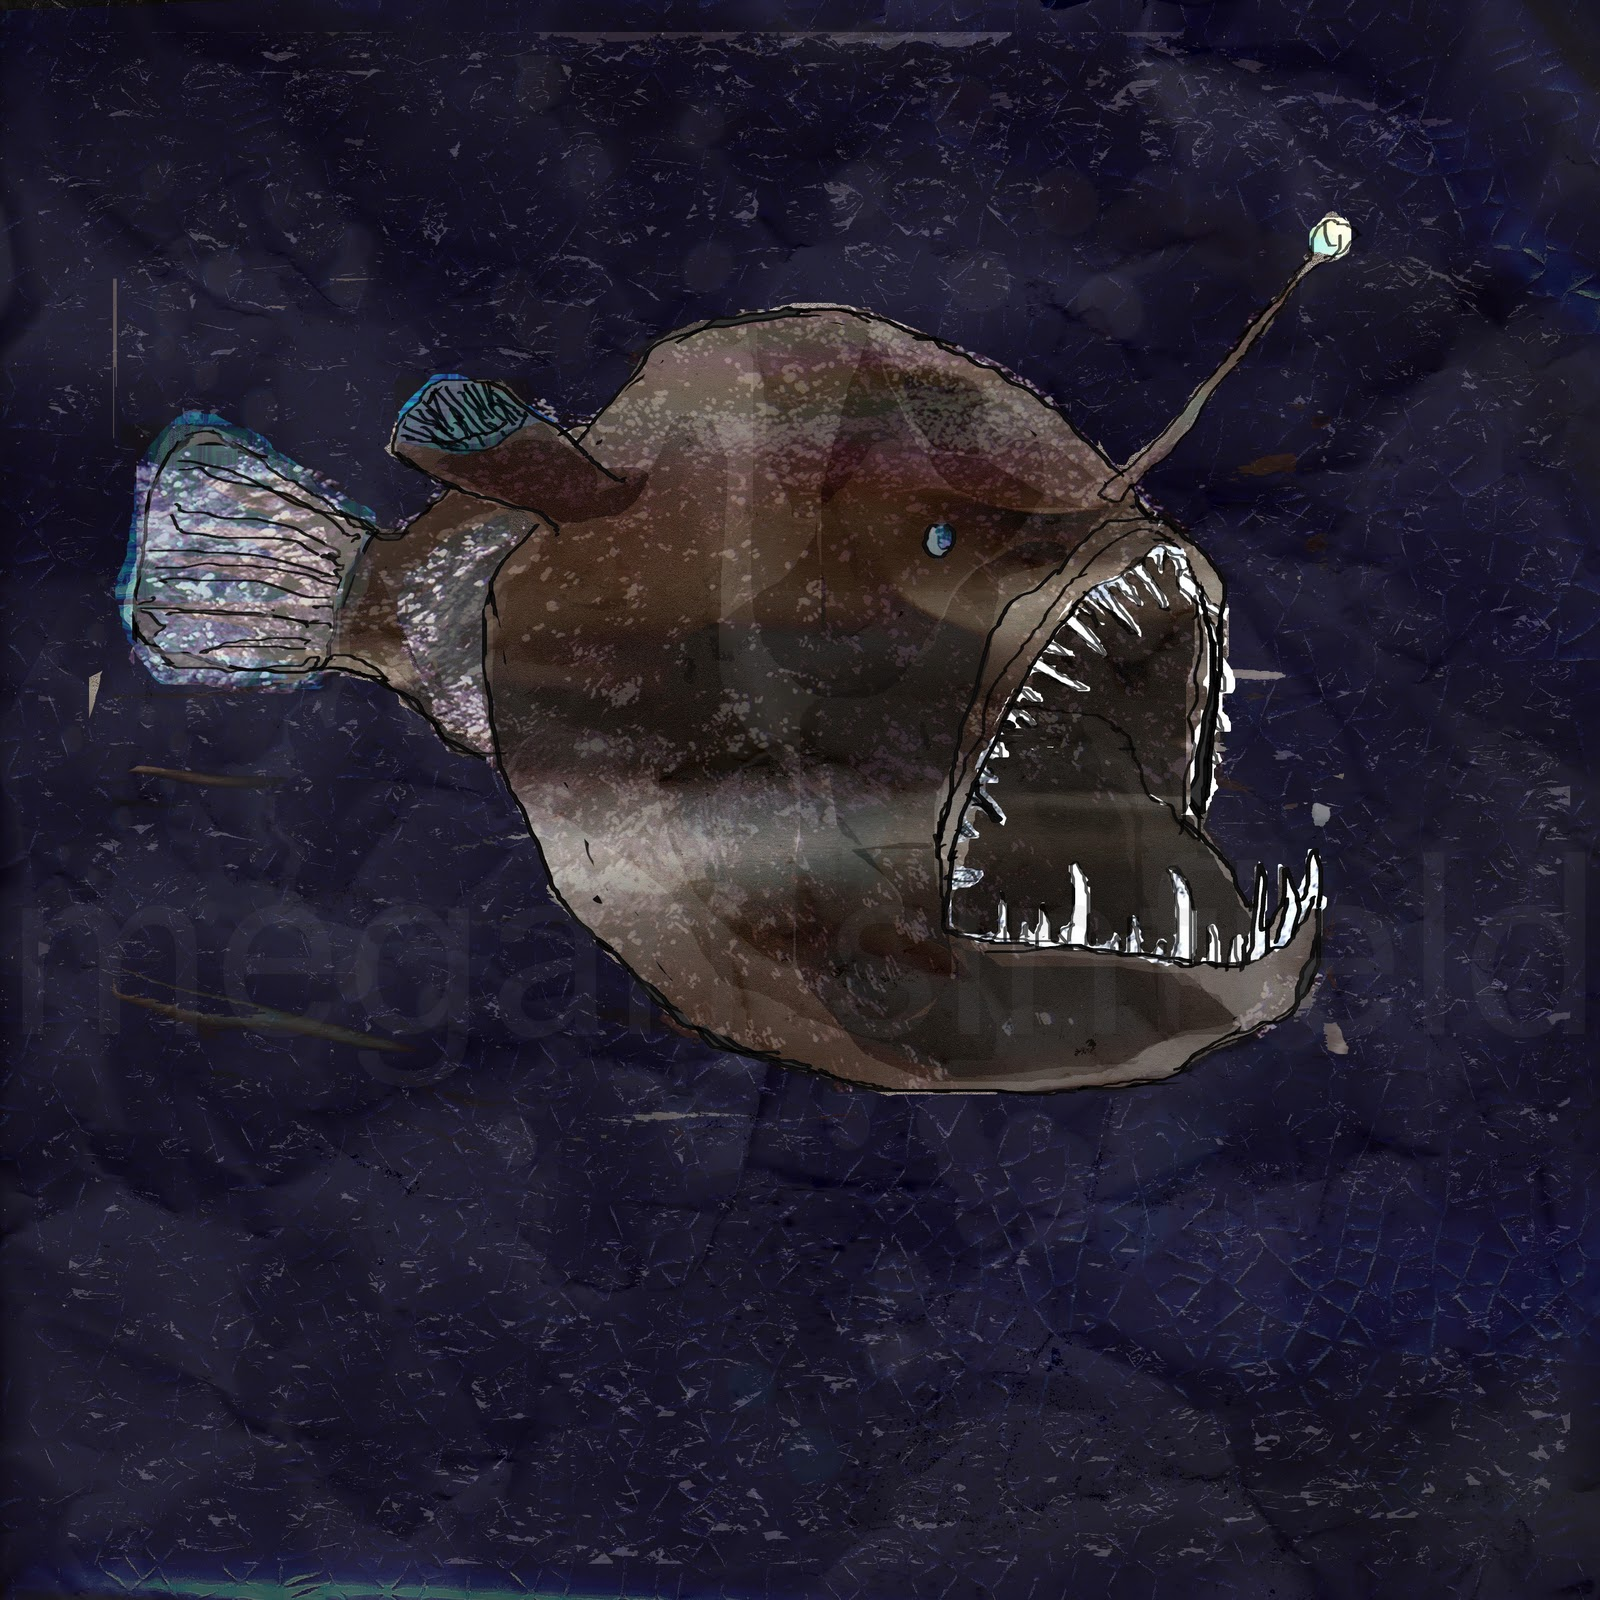 Megan sinfield angler fish 2010 for What is an angler fish